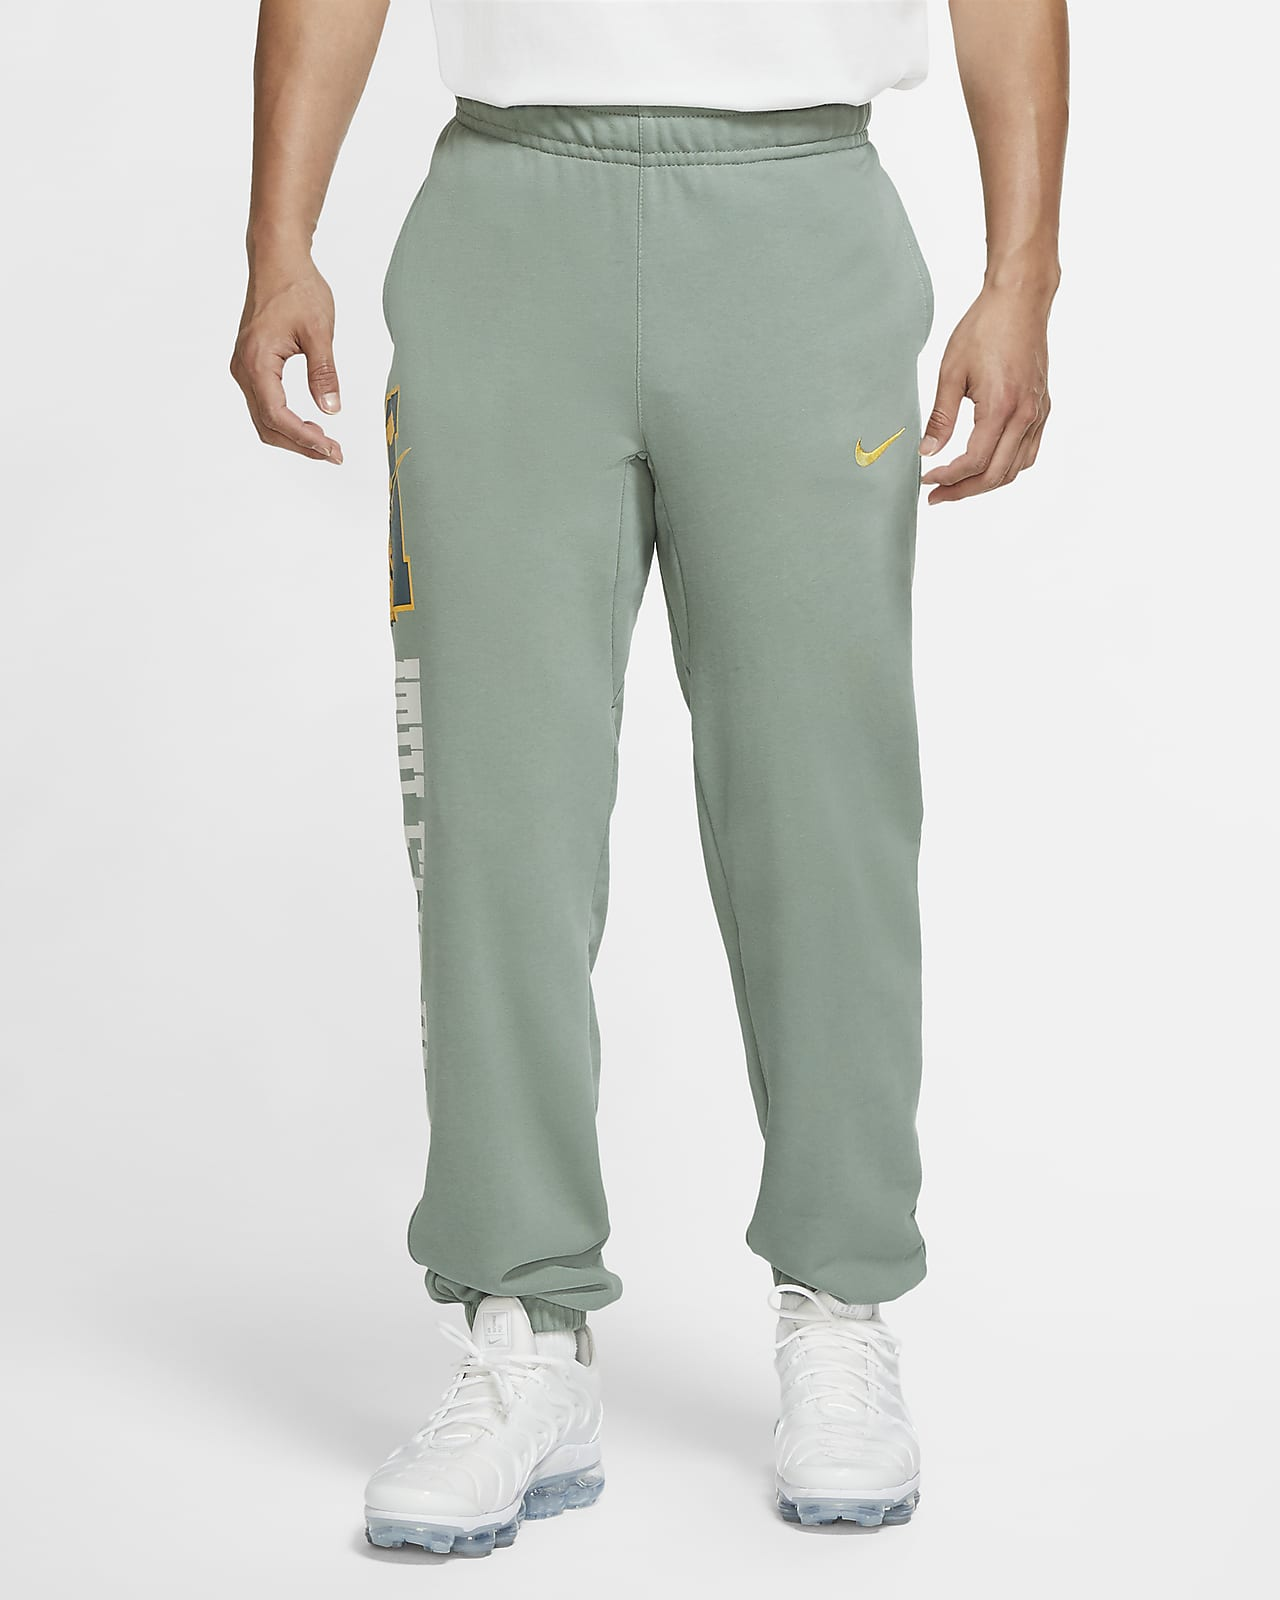 different sizes TRAKTOR Pants with cuffs green